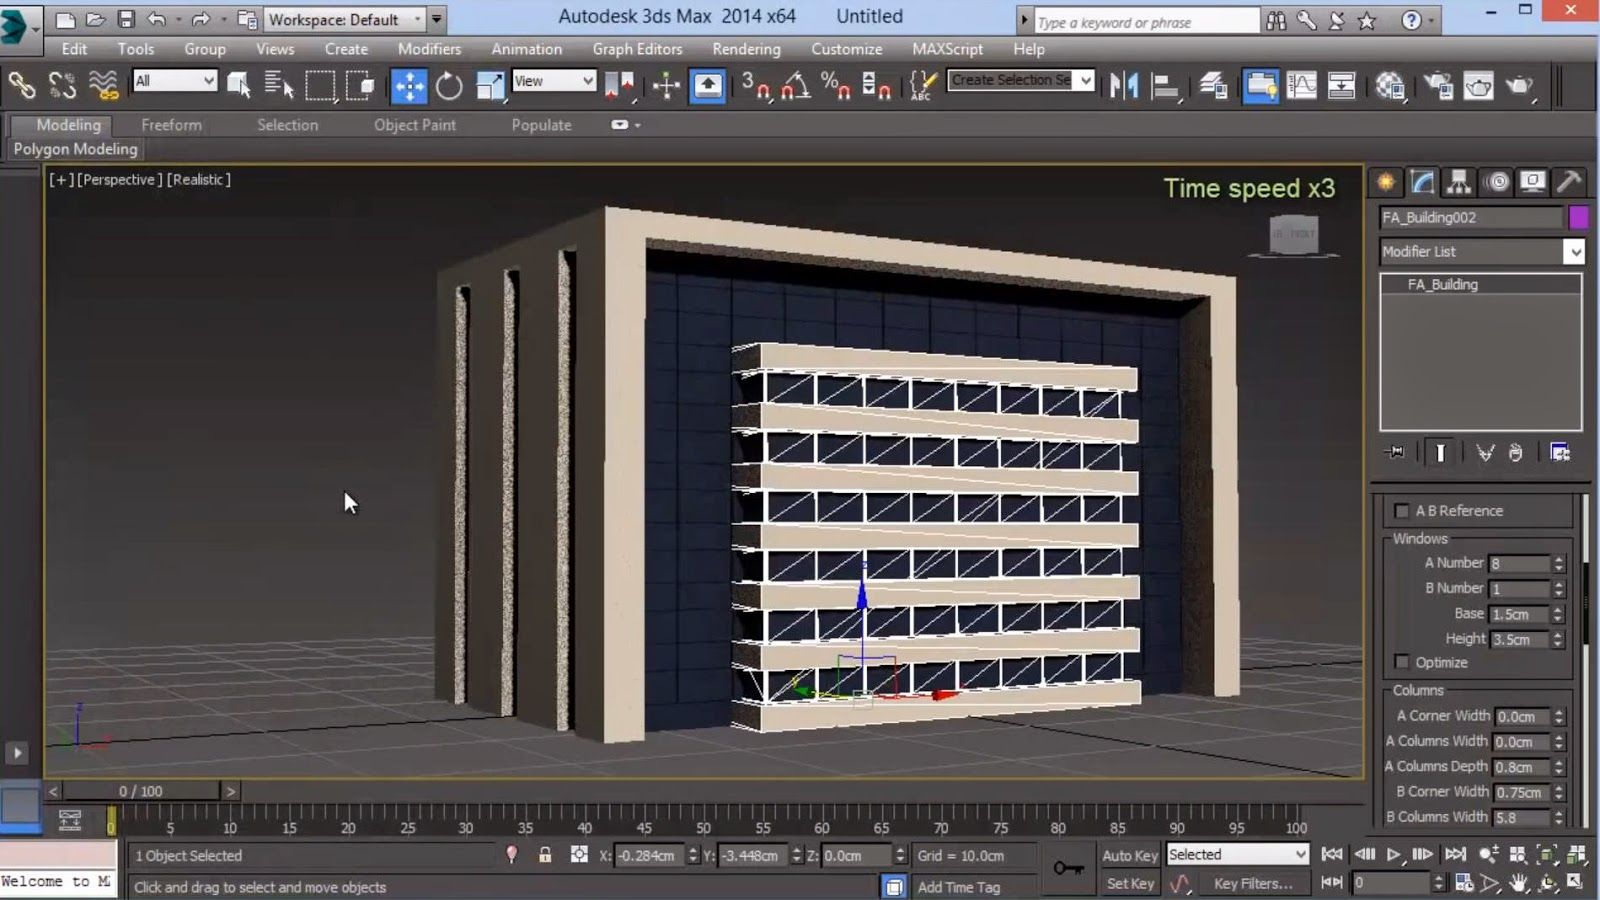 Fast Architecture v1 0 1 for 3ds Max 2012-2015 - Plugins Reviews and